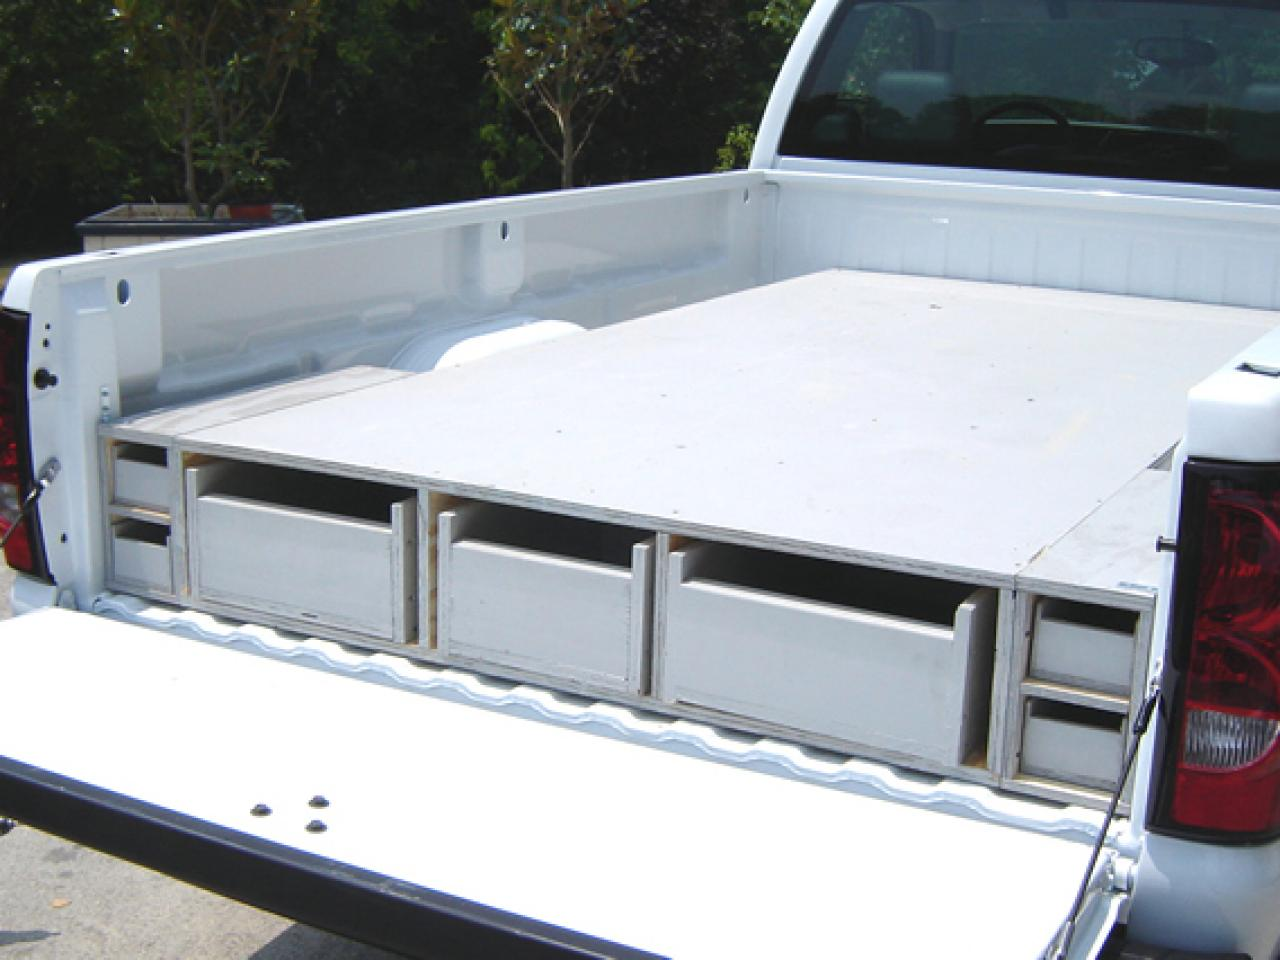 Picture of: Truck Bed Storage Drawers White